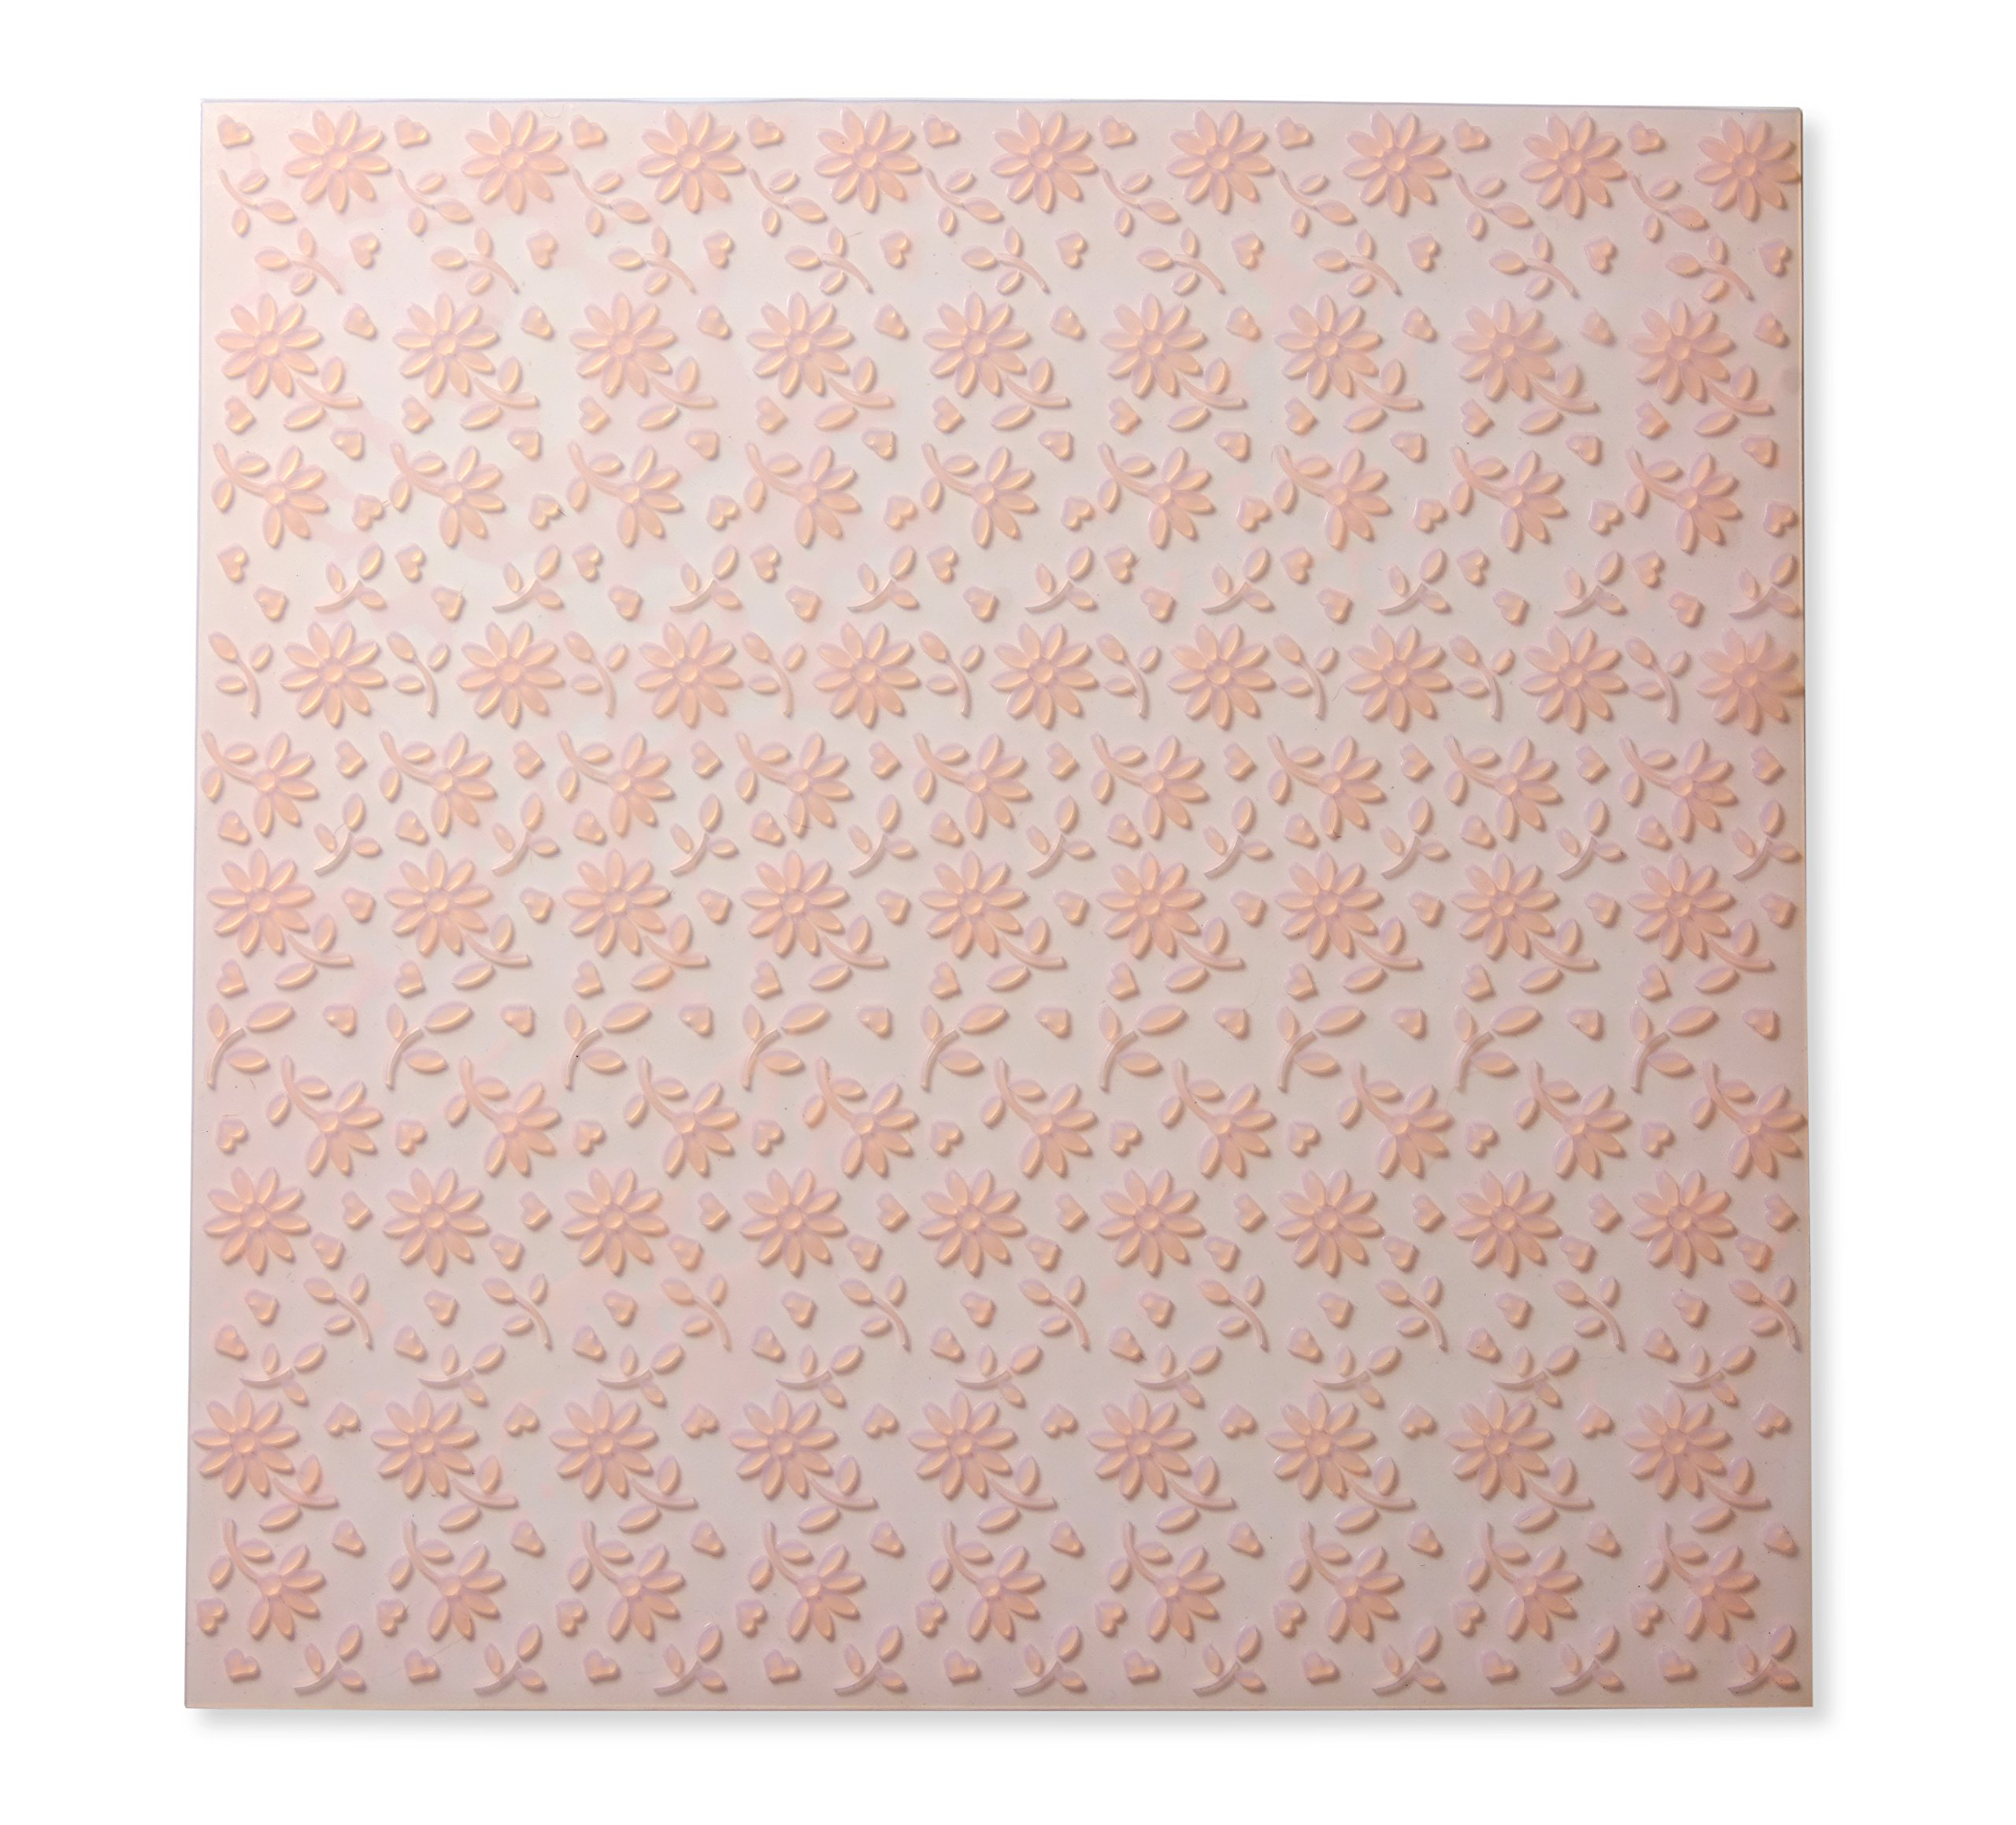 Flower Design Pastry Silicone Mould Printing Mat x 10